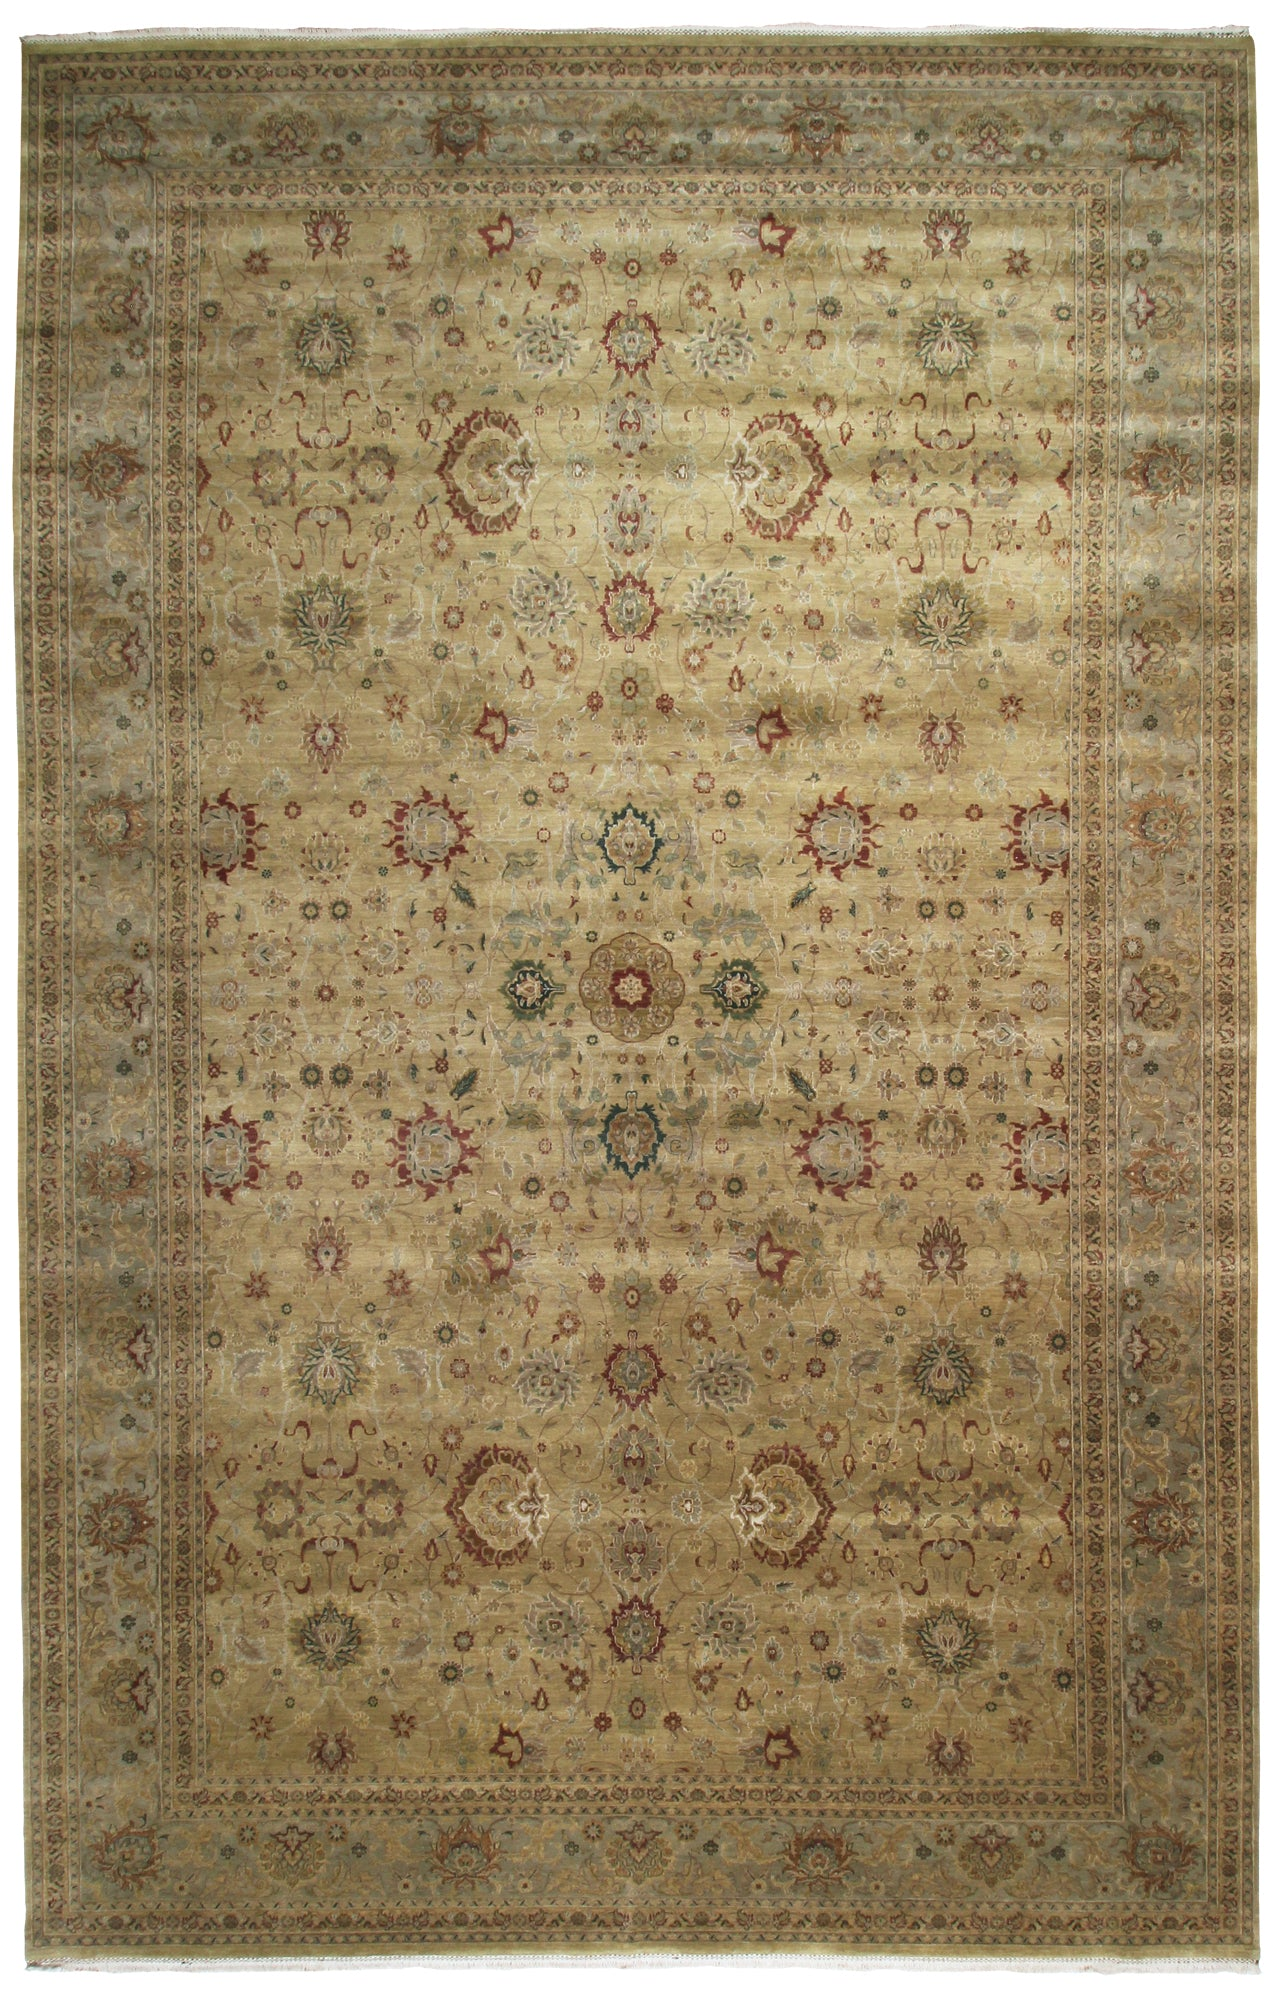 Oversize Tabriz Design Rug India